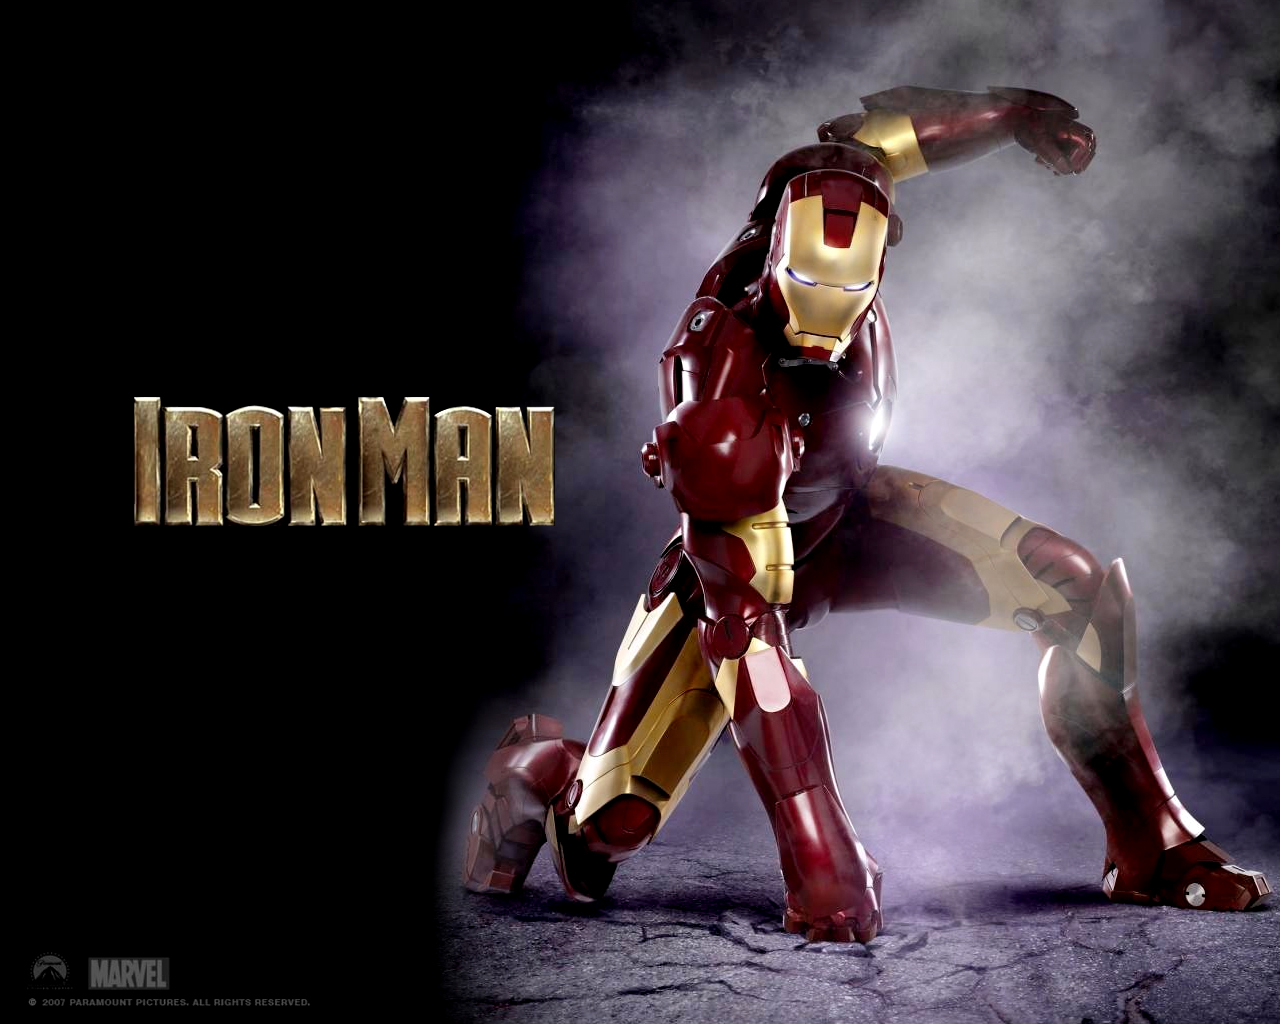 http://www.soundonsight.org/wp-content/uploads/2009/05/iron_man2.jpg